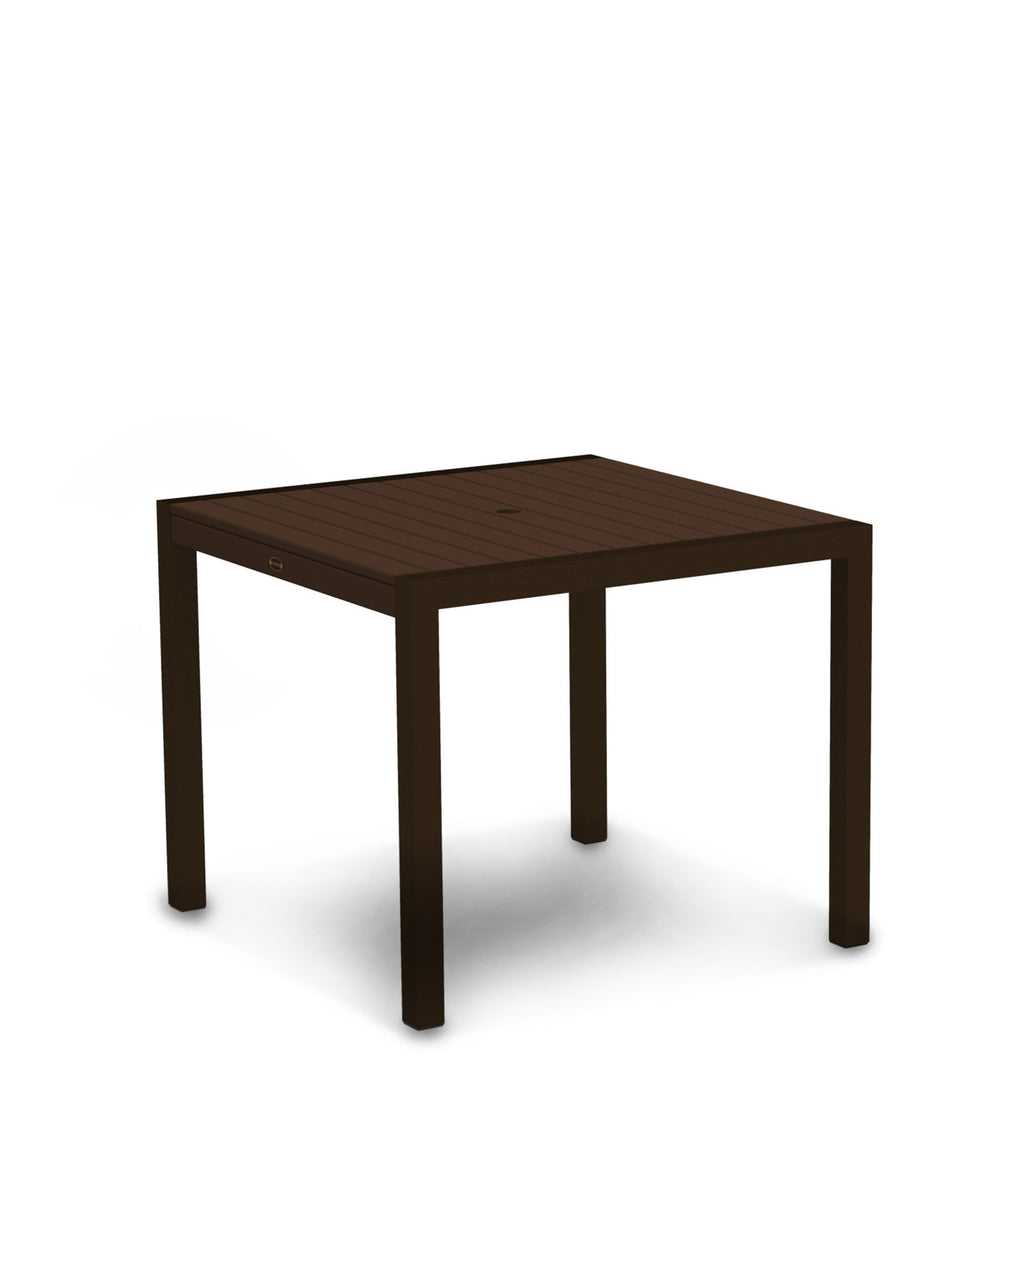 "8100-16MA MOD 36"" Dining Table in Textured Bronze & Mahogany"